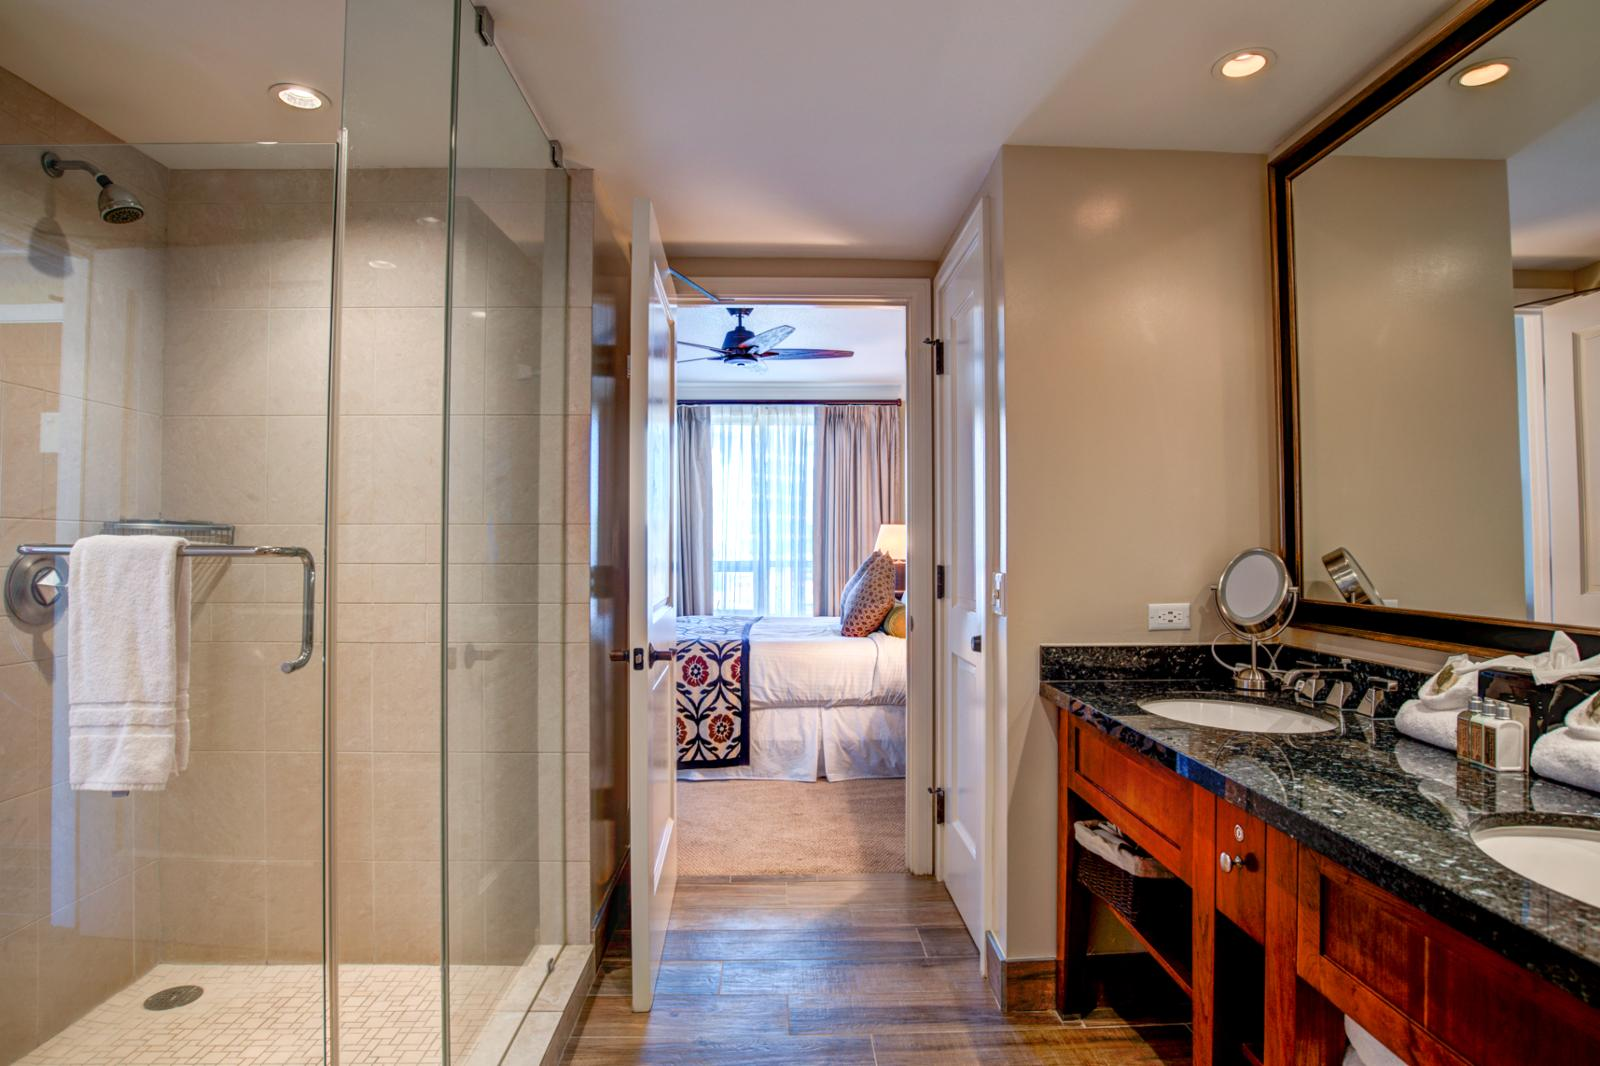 Glass enclosed shower and adjacent soaking tub